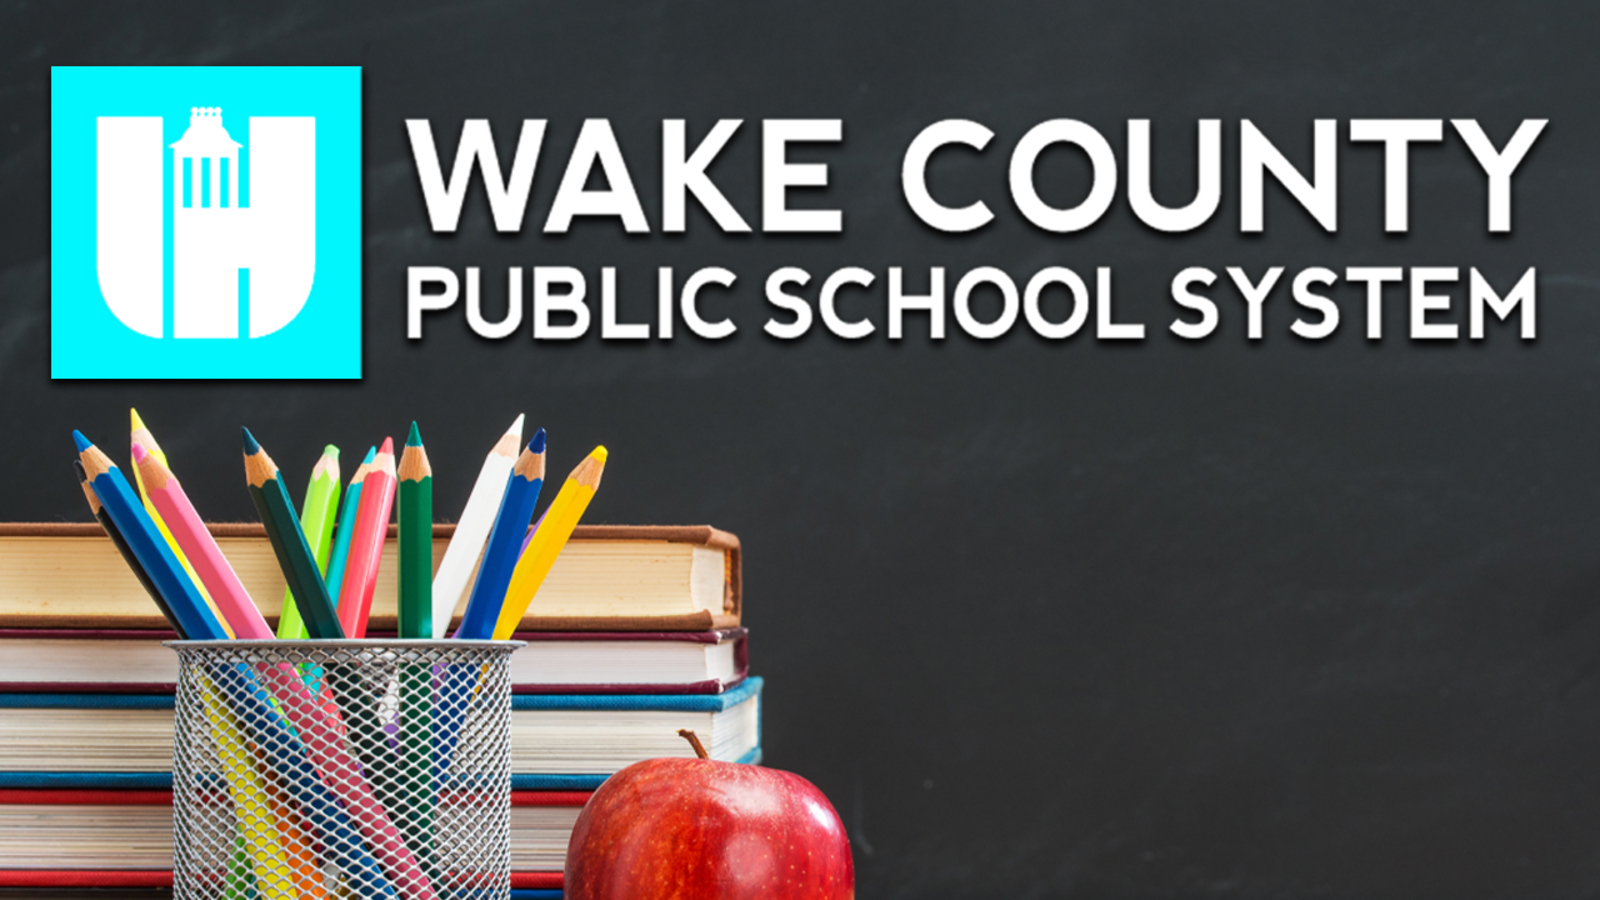 Wcpss 2020 2021 School Year Wake County Public Schools Discusses Three Week Rotations For Students Abc11 Raleigh Durham